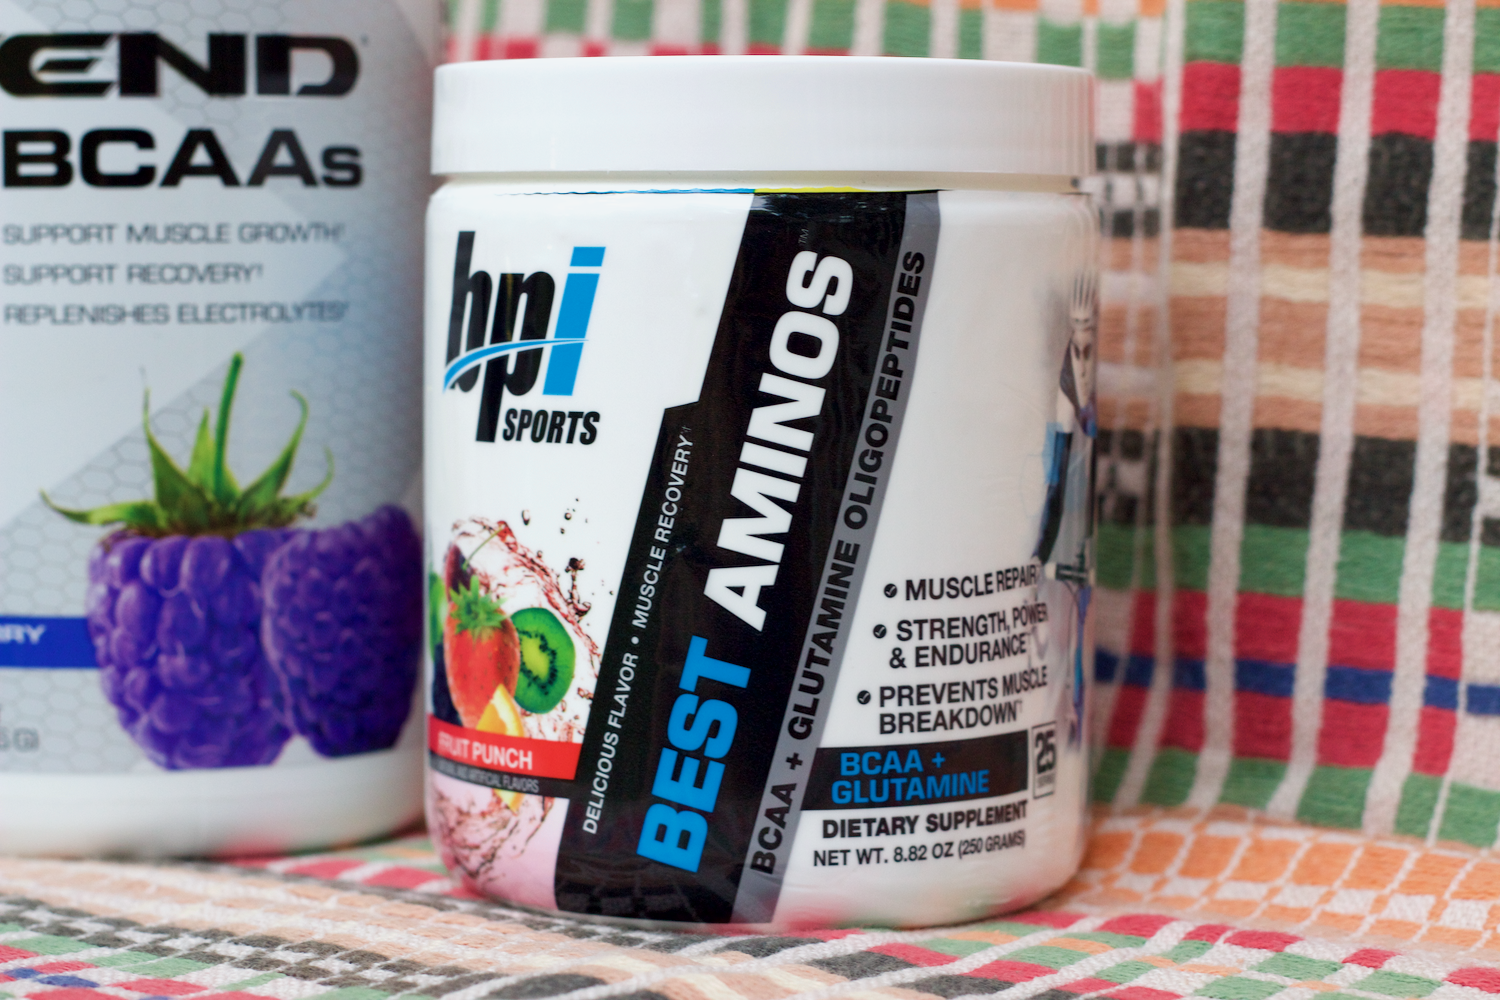 Supplements can take your training to the next level. Check out my current workout supplements!